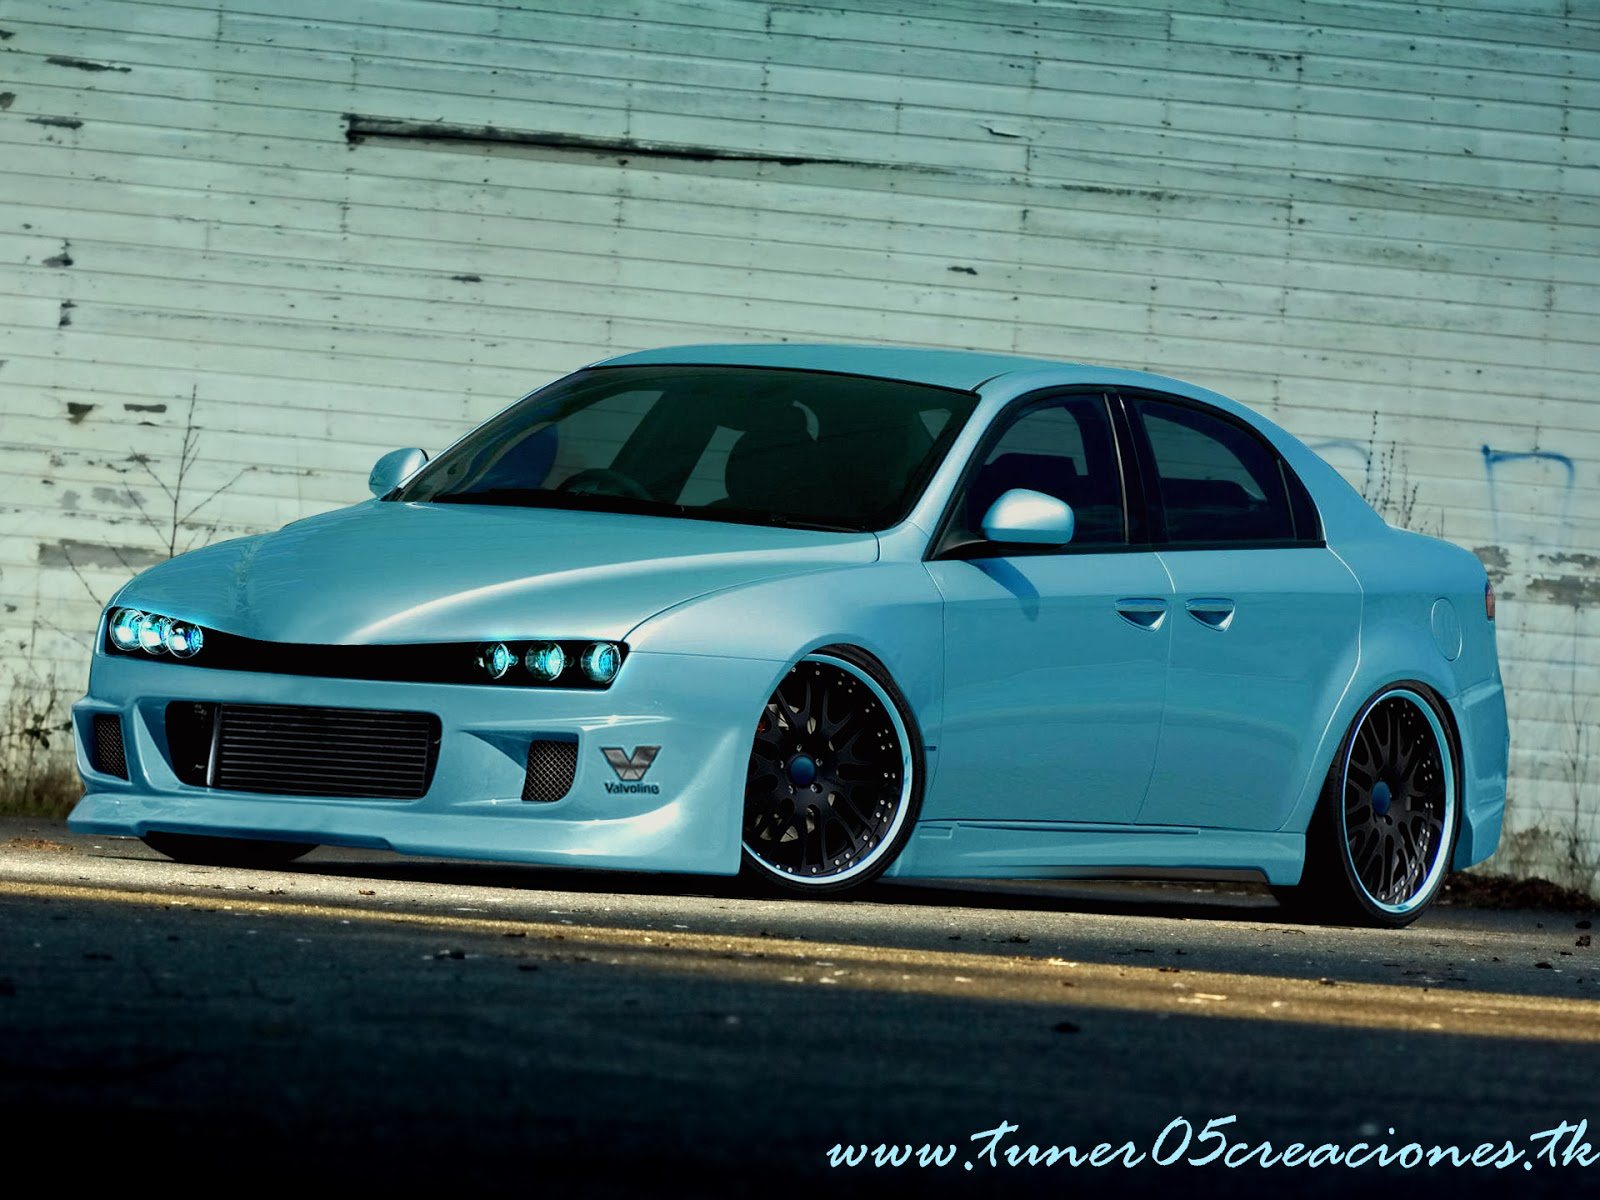 hq engine and car pictures crazy alfa romeo 159 tuning. Black Bedroom Furniture Sets. Home Design Ideas